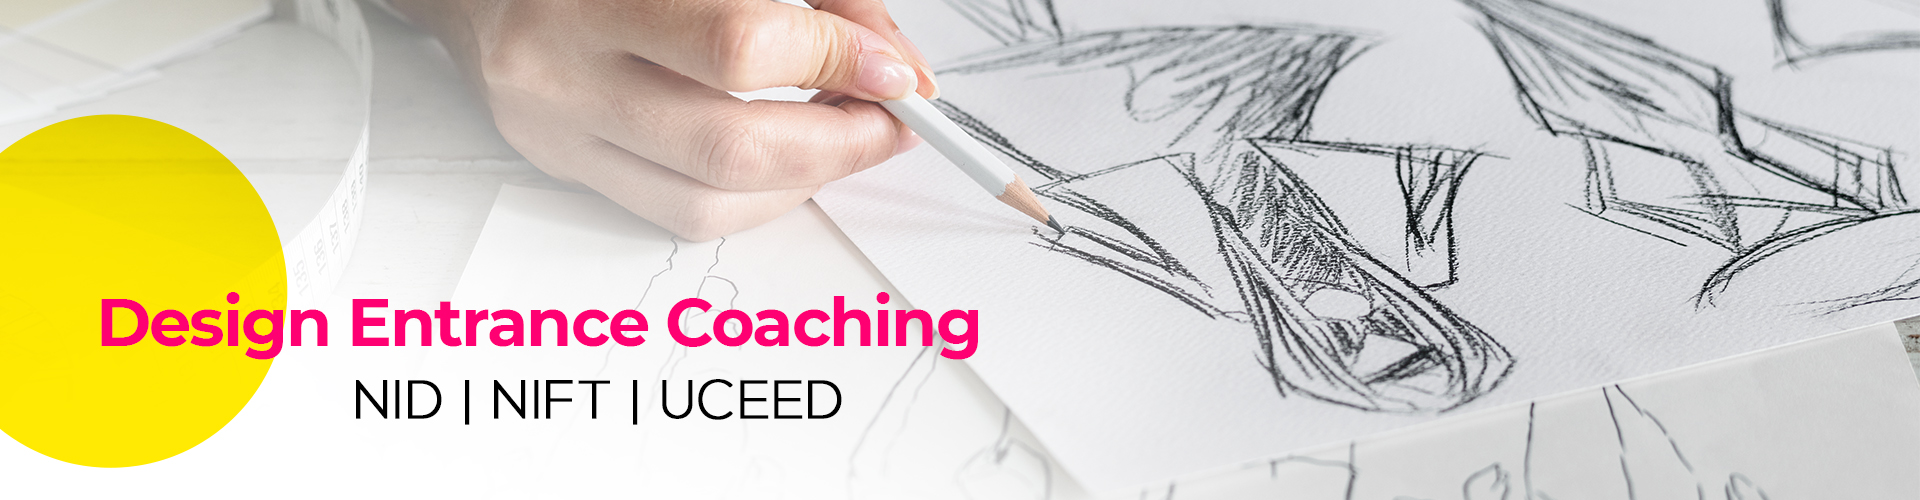 Design Entrance Coaching